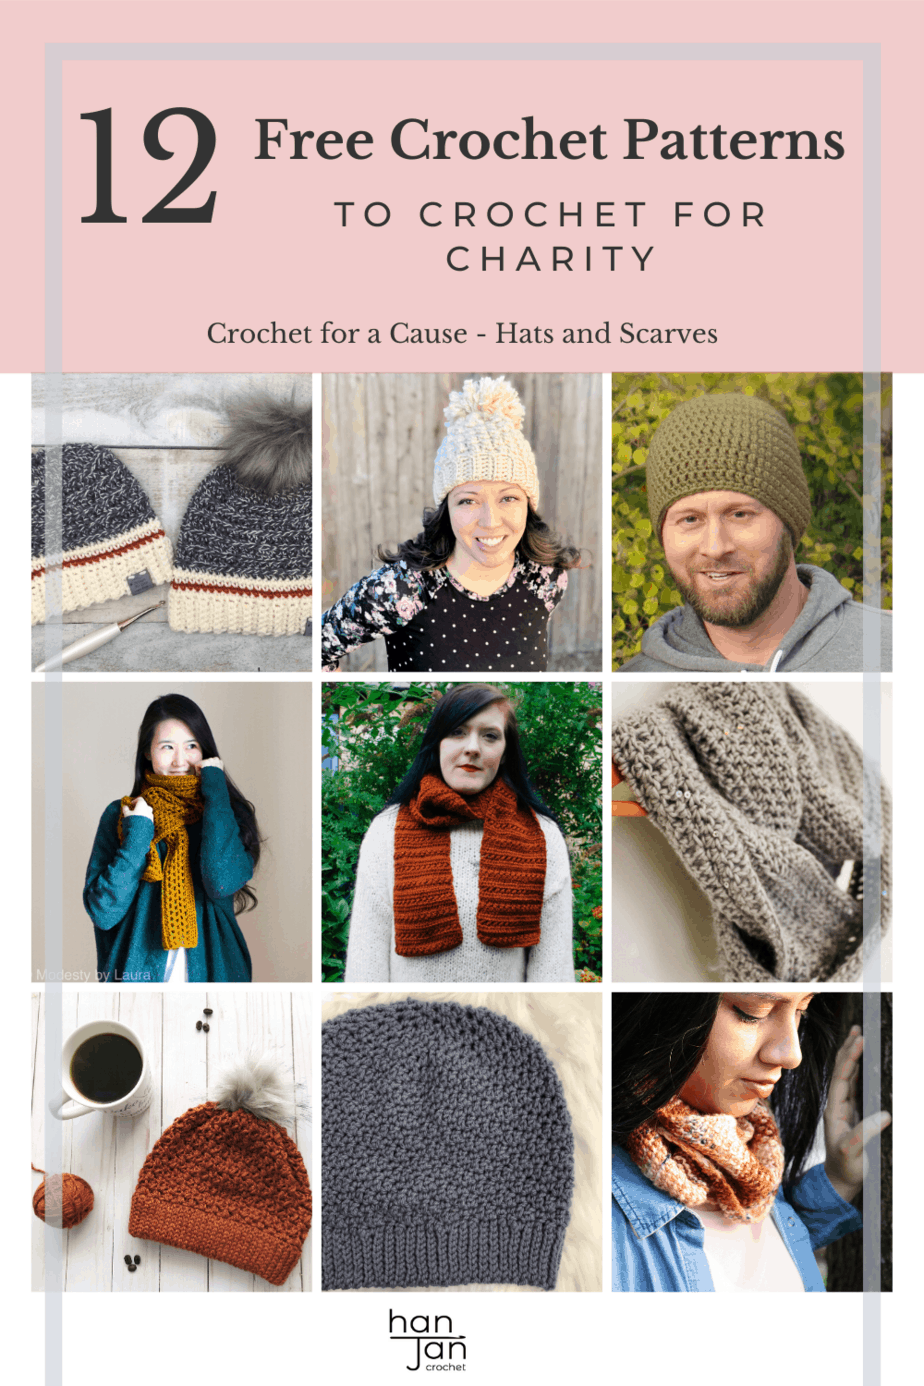 crochet hats and scarves for charity